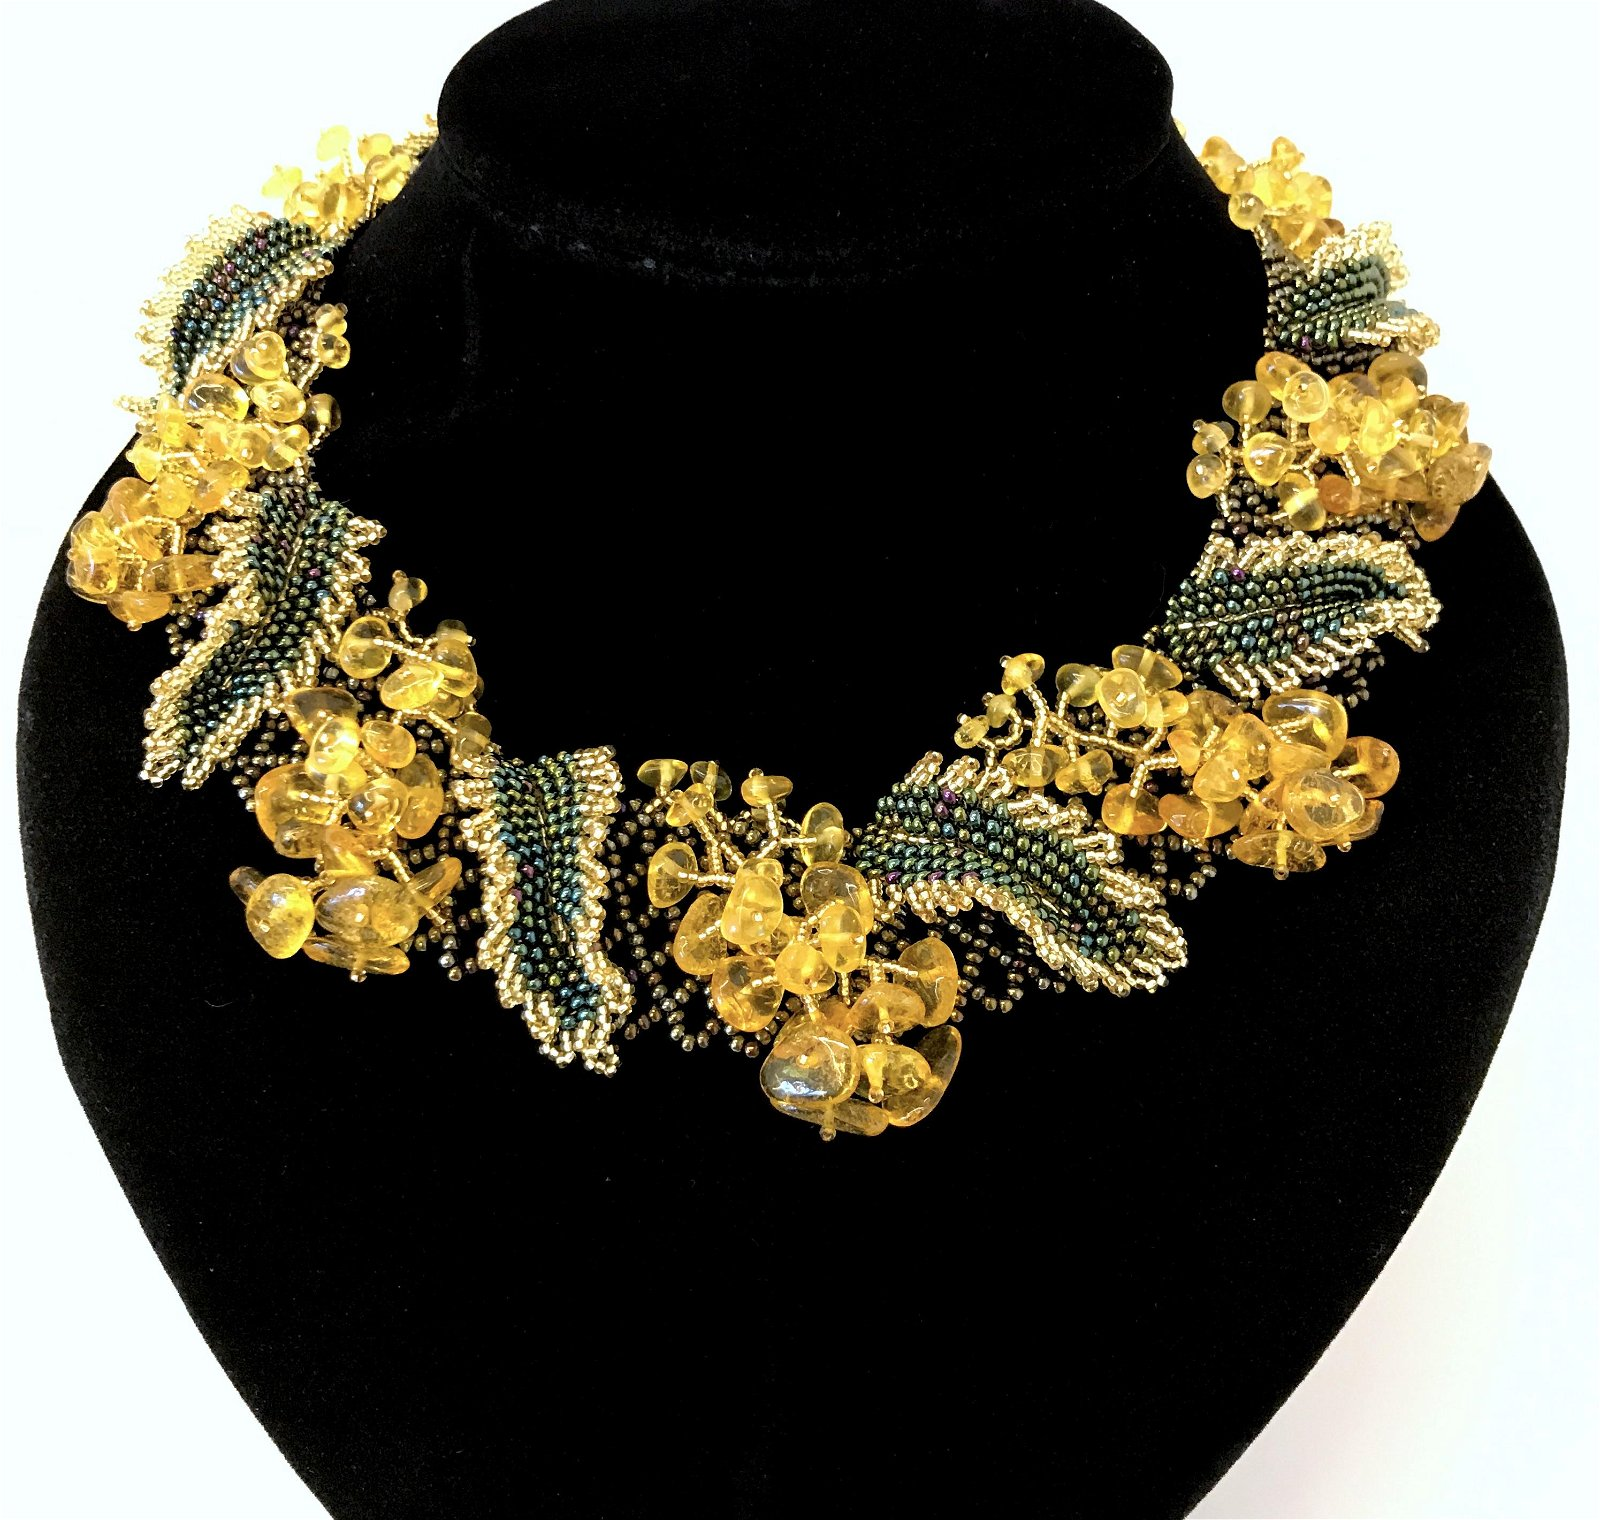 Impressive Cleopatra necklace with Amber